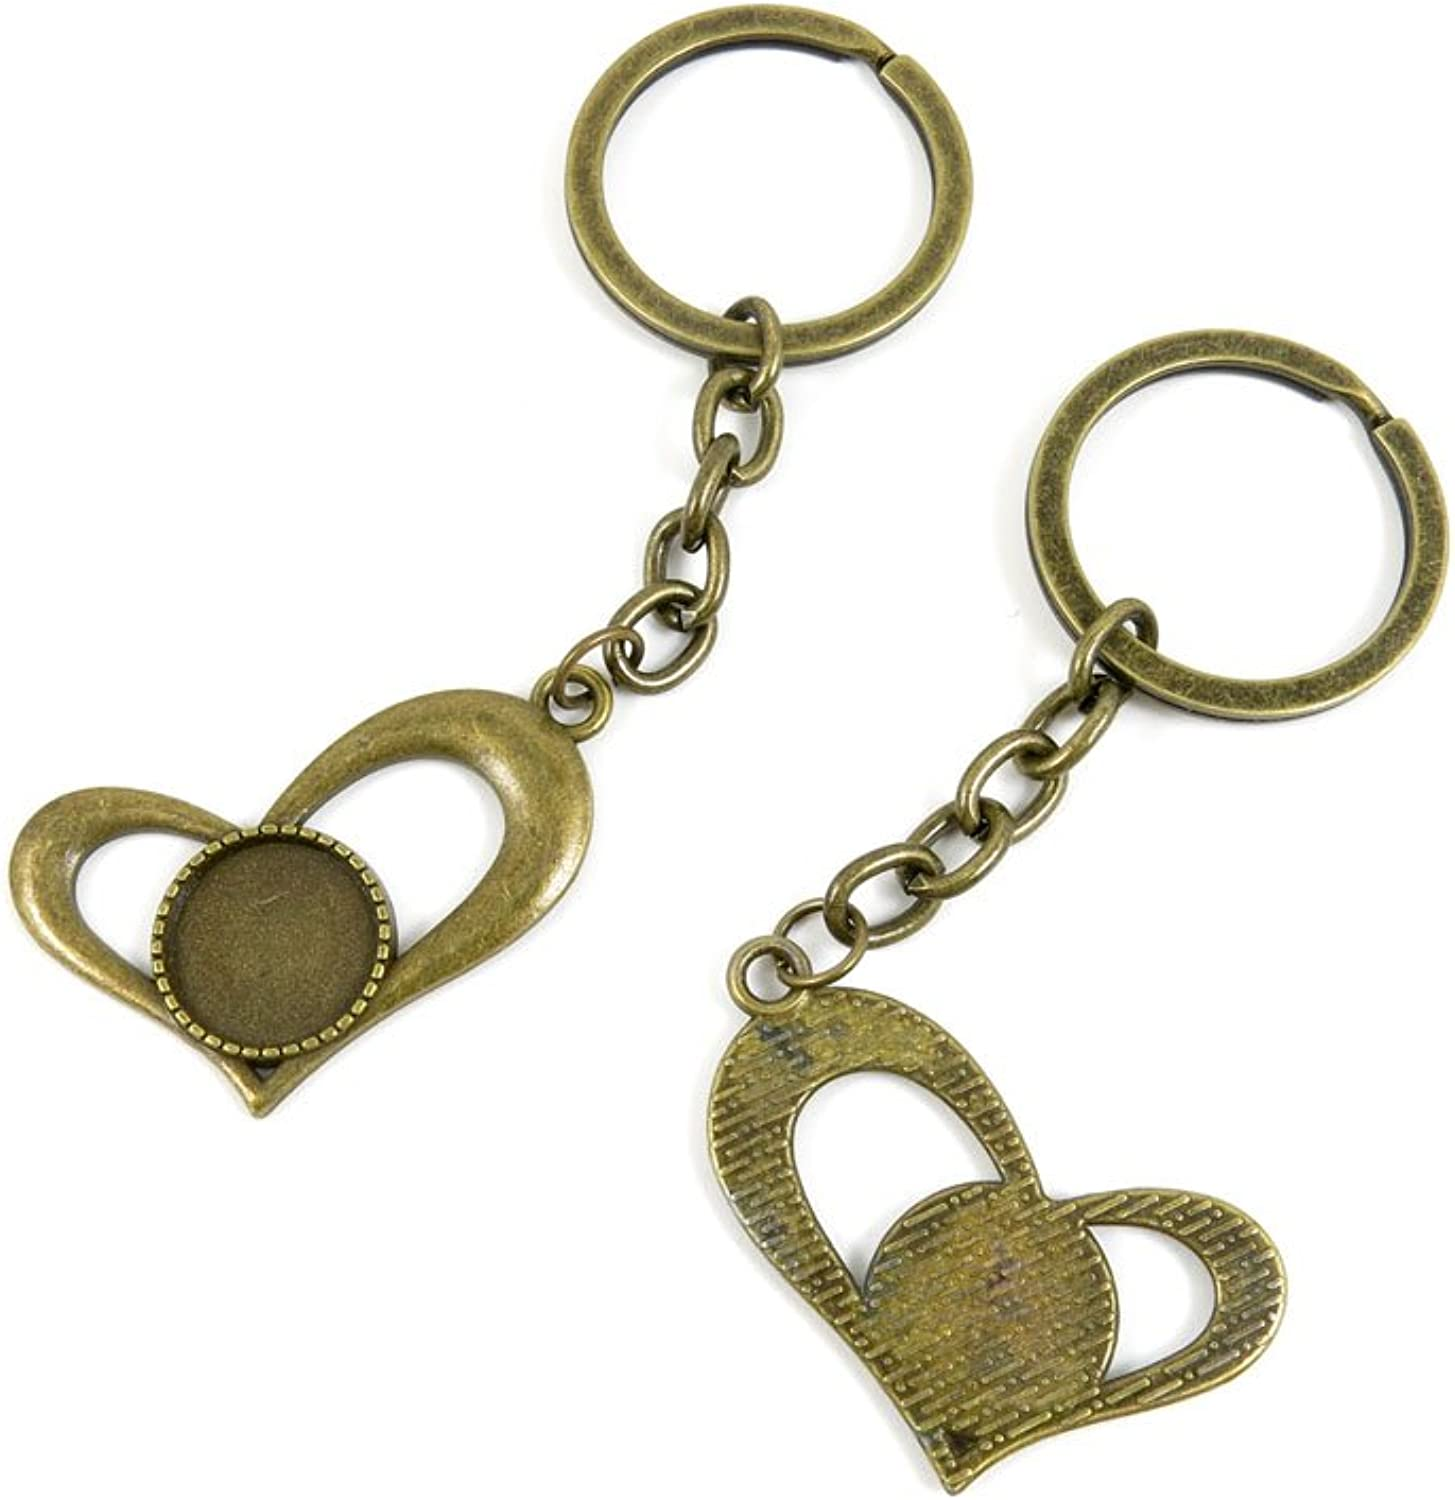 150 Pieces Fashion Jewelry Keyring Keychain Door Car Key Tag Ring Chain Supplier Supply Wholesale Bulk Lots D0AJ6 Heart Cabochon Base Blanks